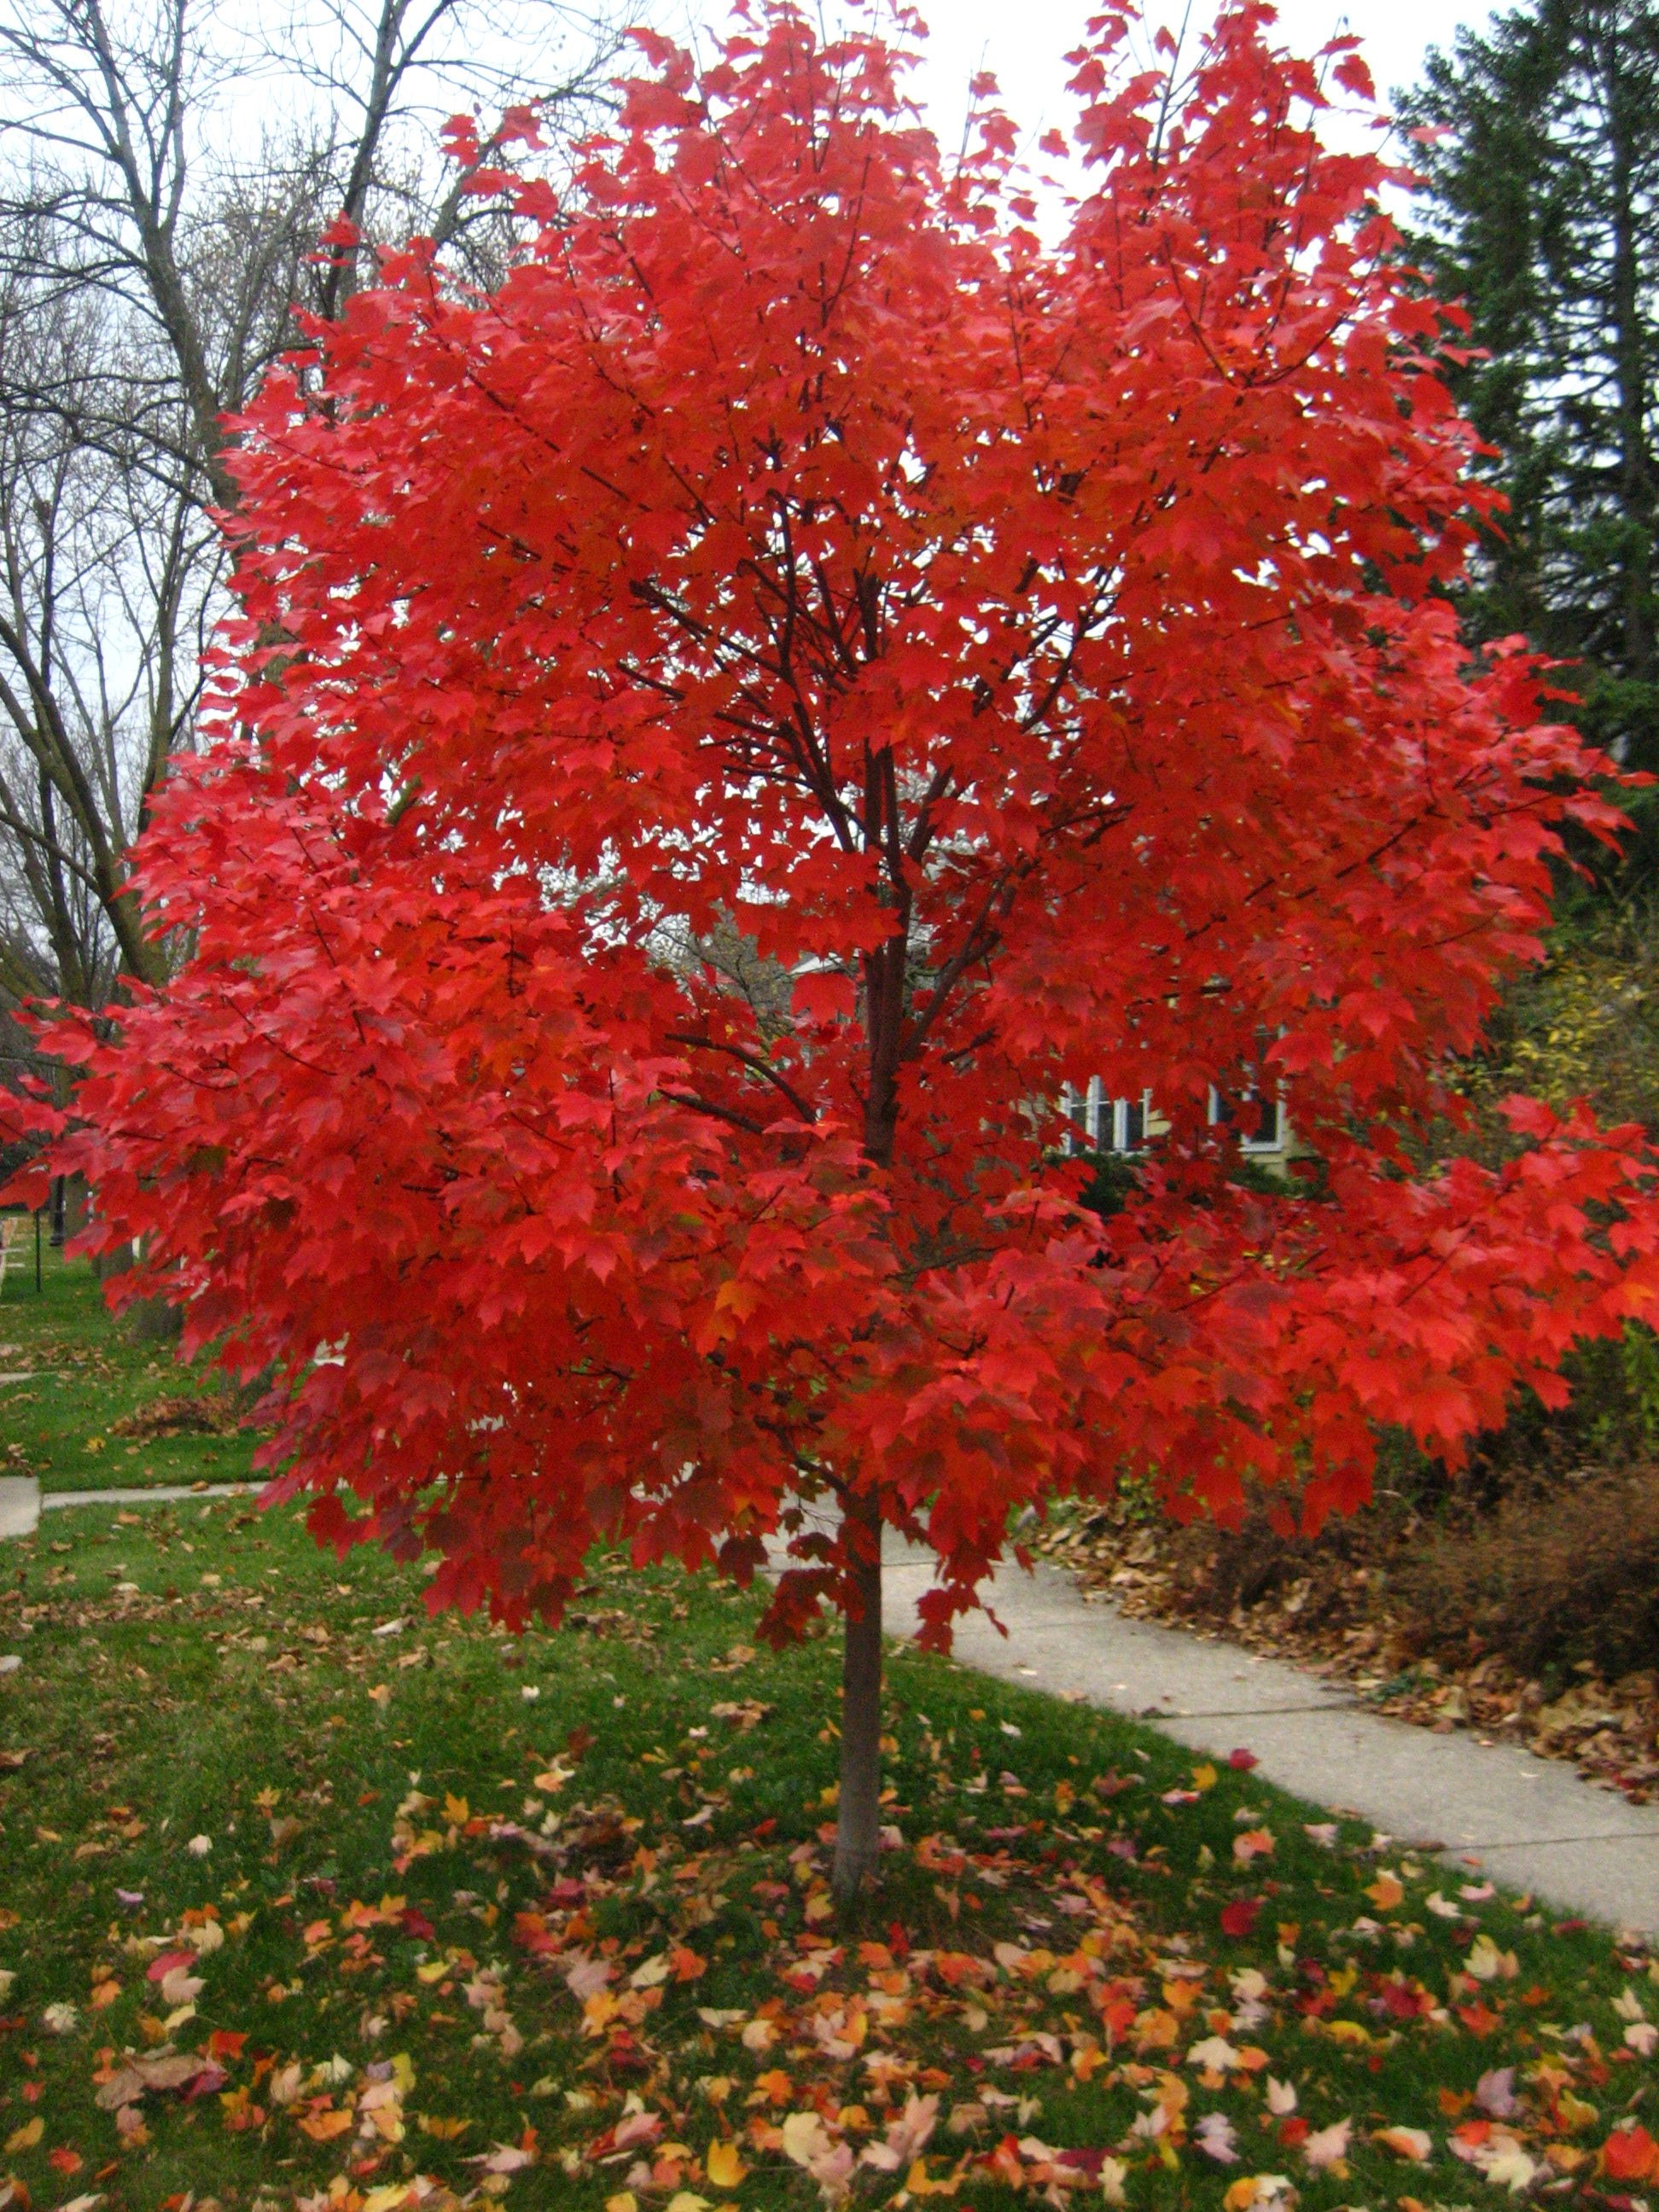 Ahorn October Glory Autumn Blaze Maple Google Search My Garden Red Maple